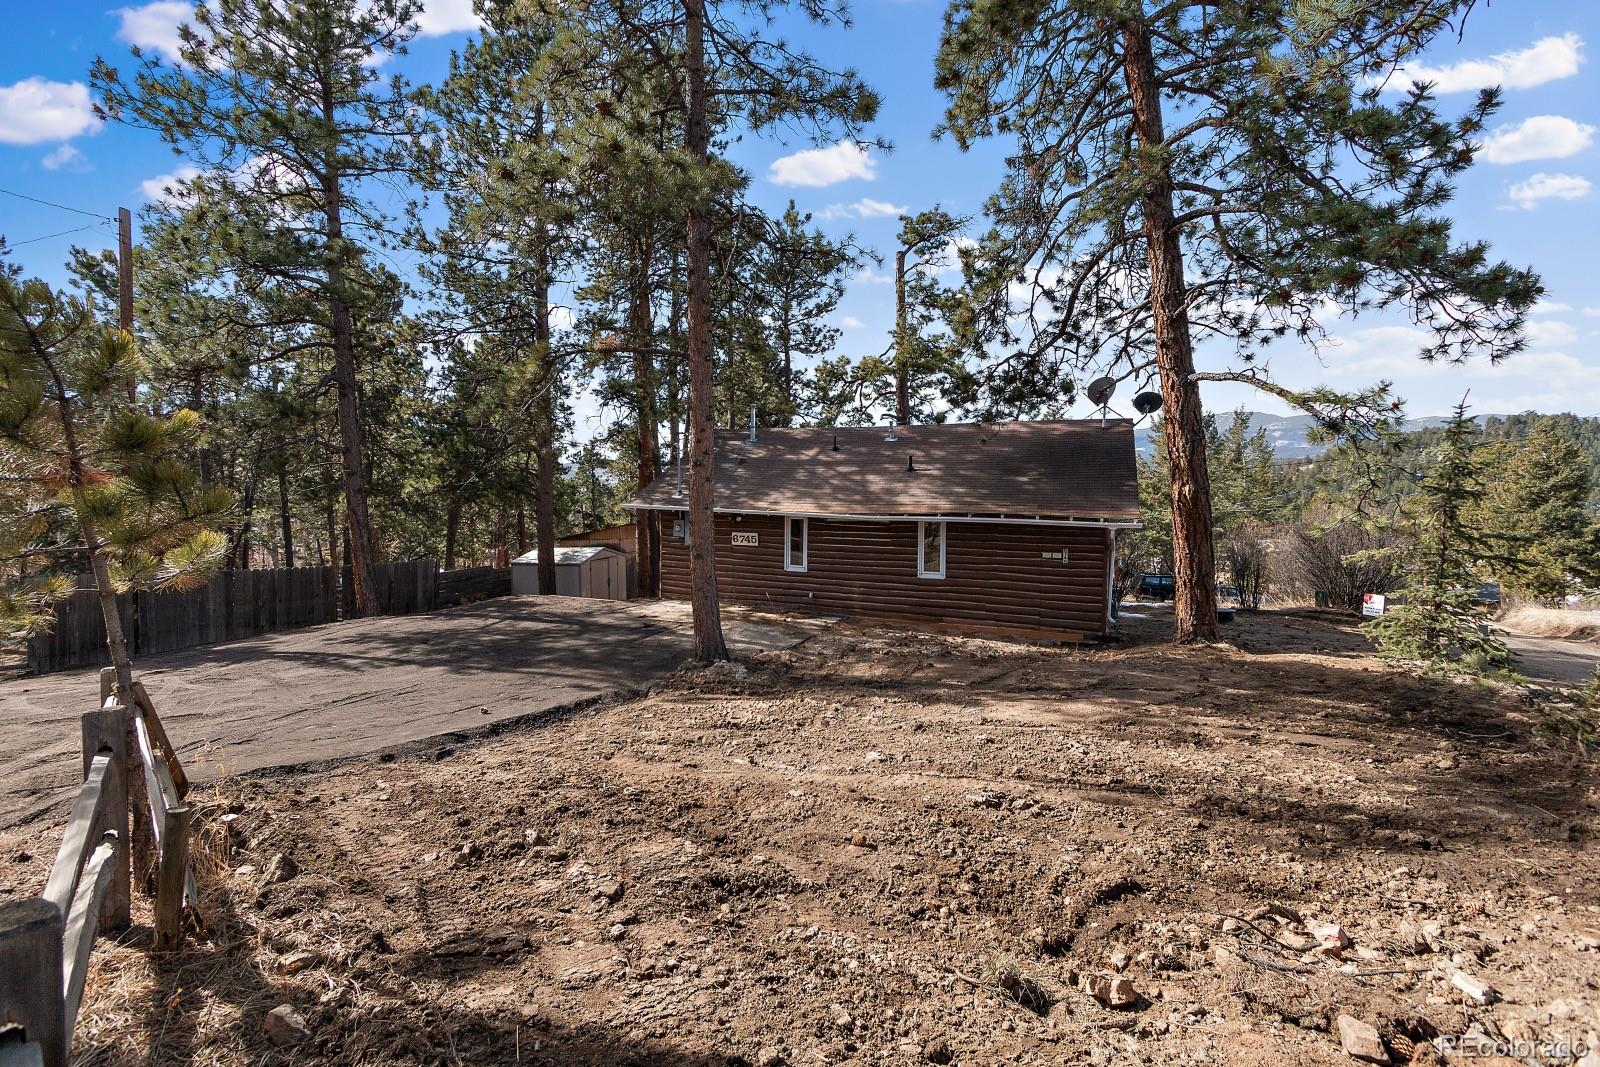 6745 Marshmerry Lane, Evergreen, CO 80439 - Evergreen, CO real estate listing